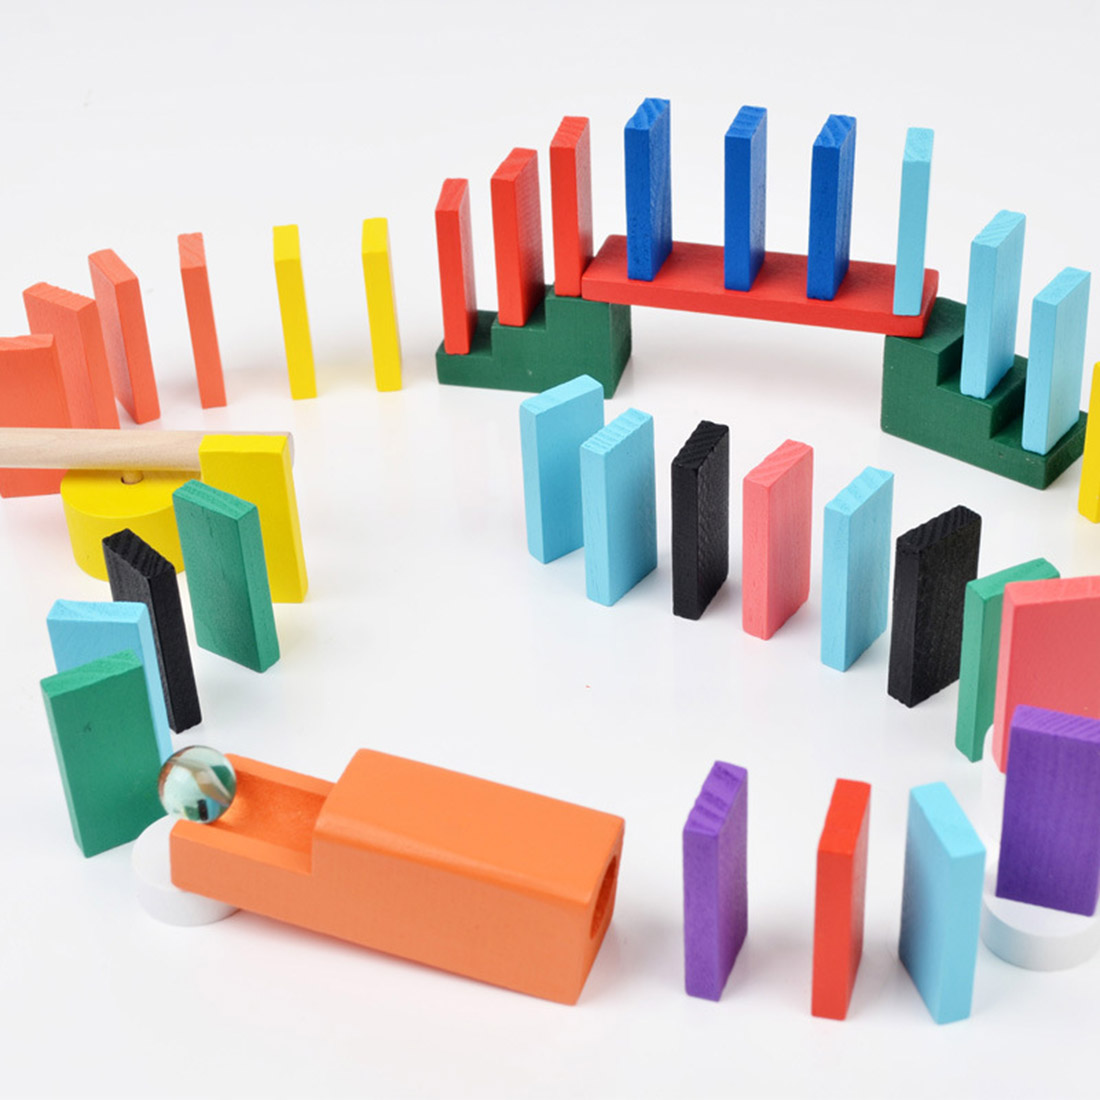 200Pcs Wooden Domino Blocks Set for Kids Racing Games Intelligence Building and Stacking Blocks Education Toy in Blocks from Toys Hobbies